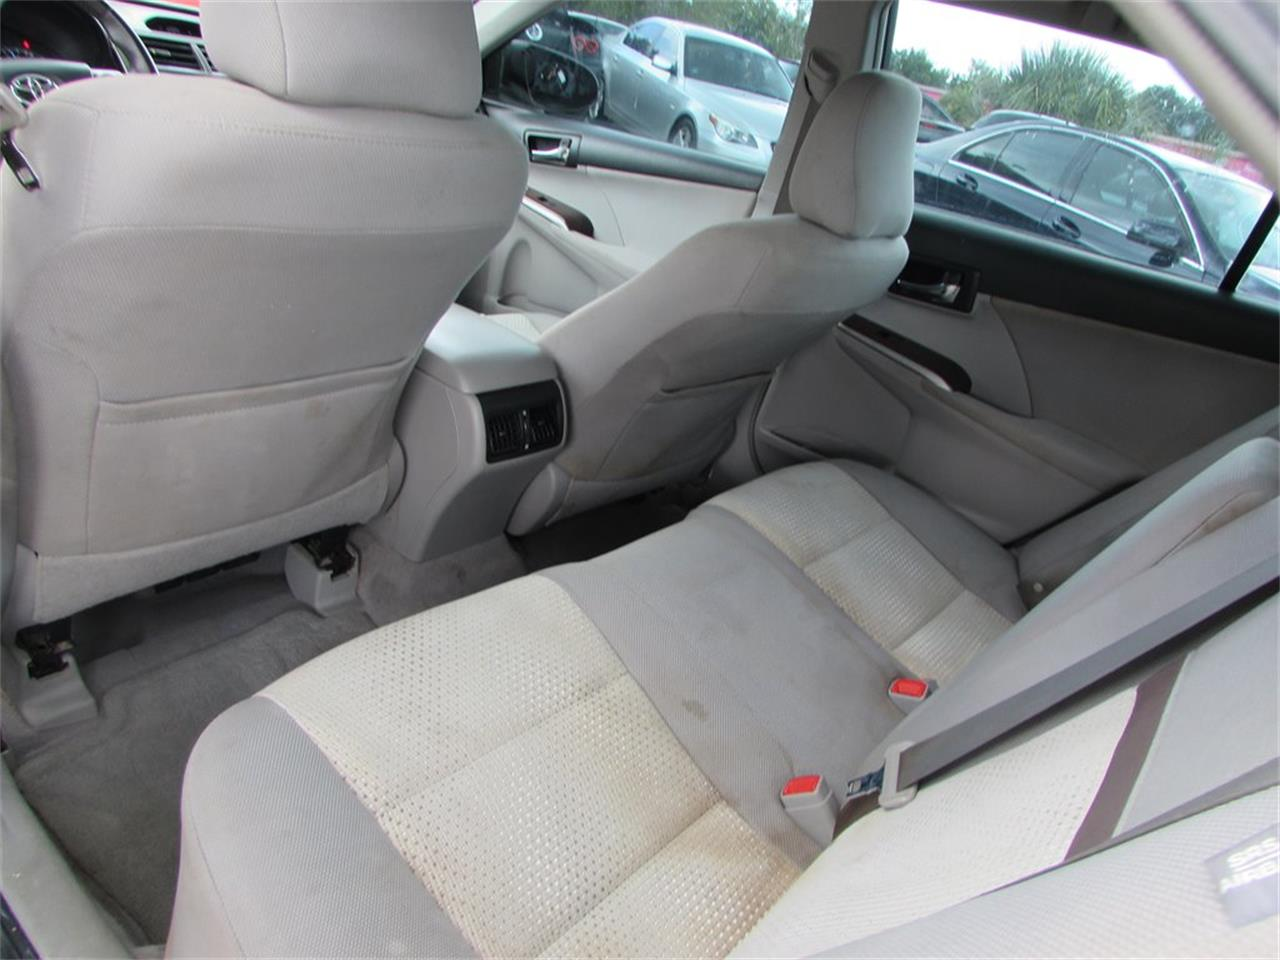 Large Picture of 2012 Toyota Camry located in Florida - $10,500.00 - QBF0